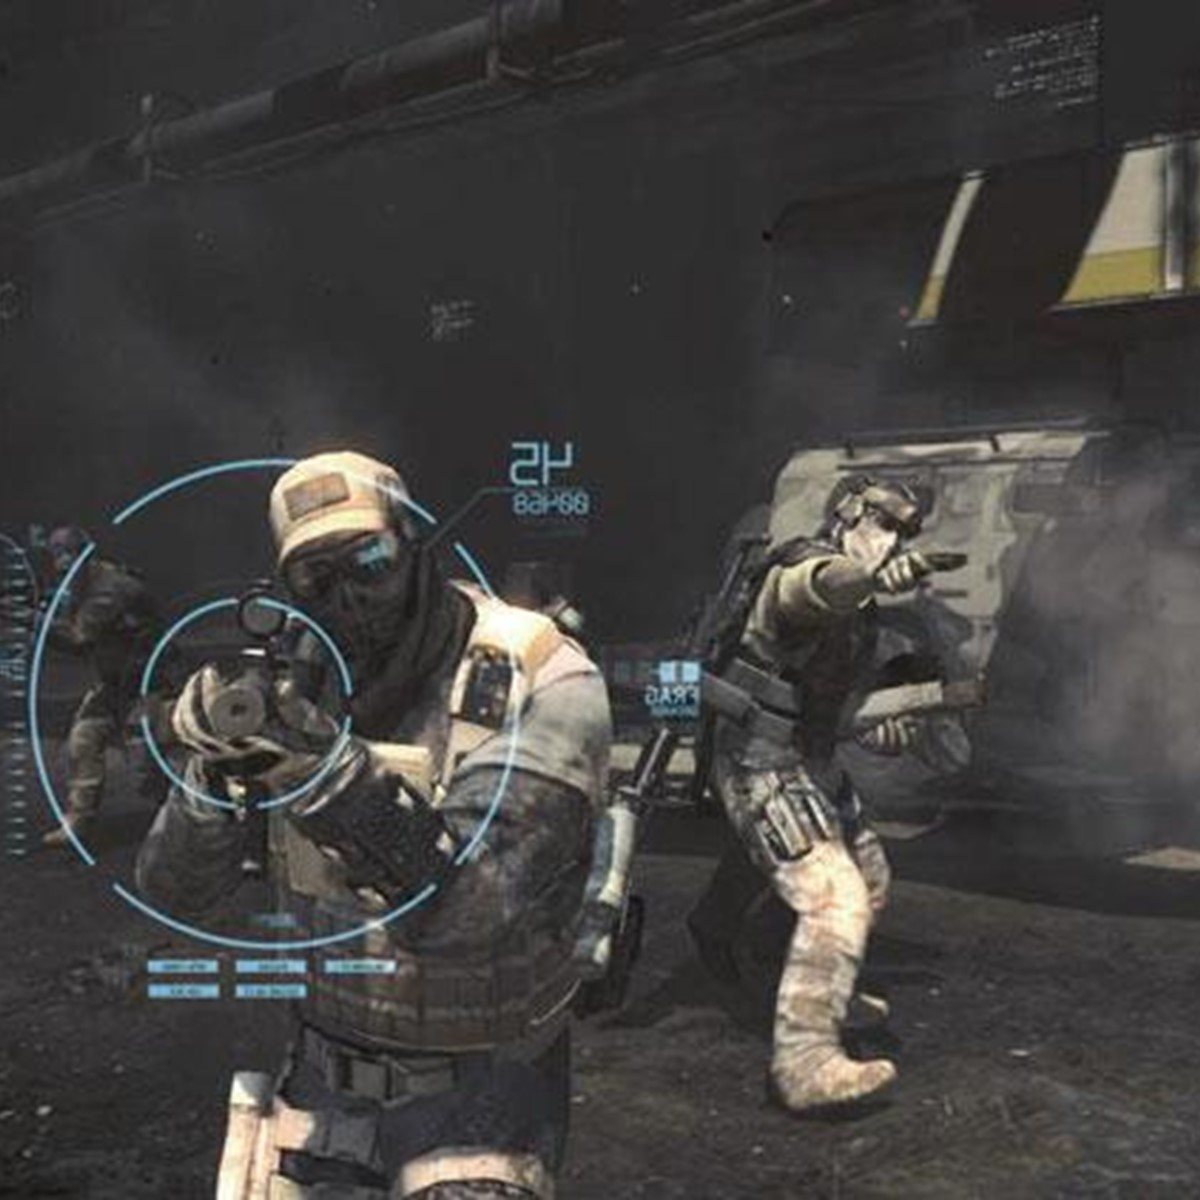 Tom Clancy's Ghost Recon Alternatives for Linux